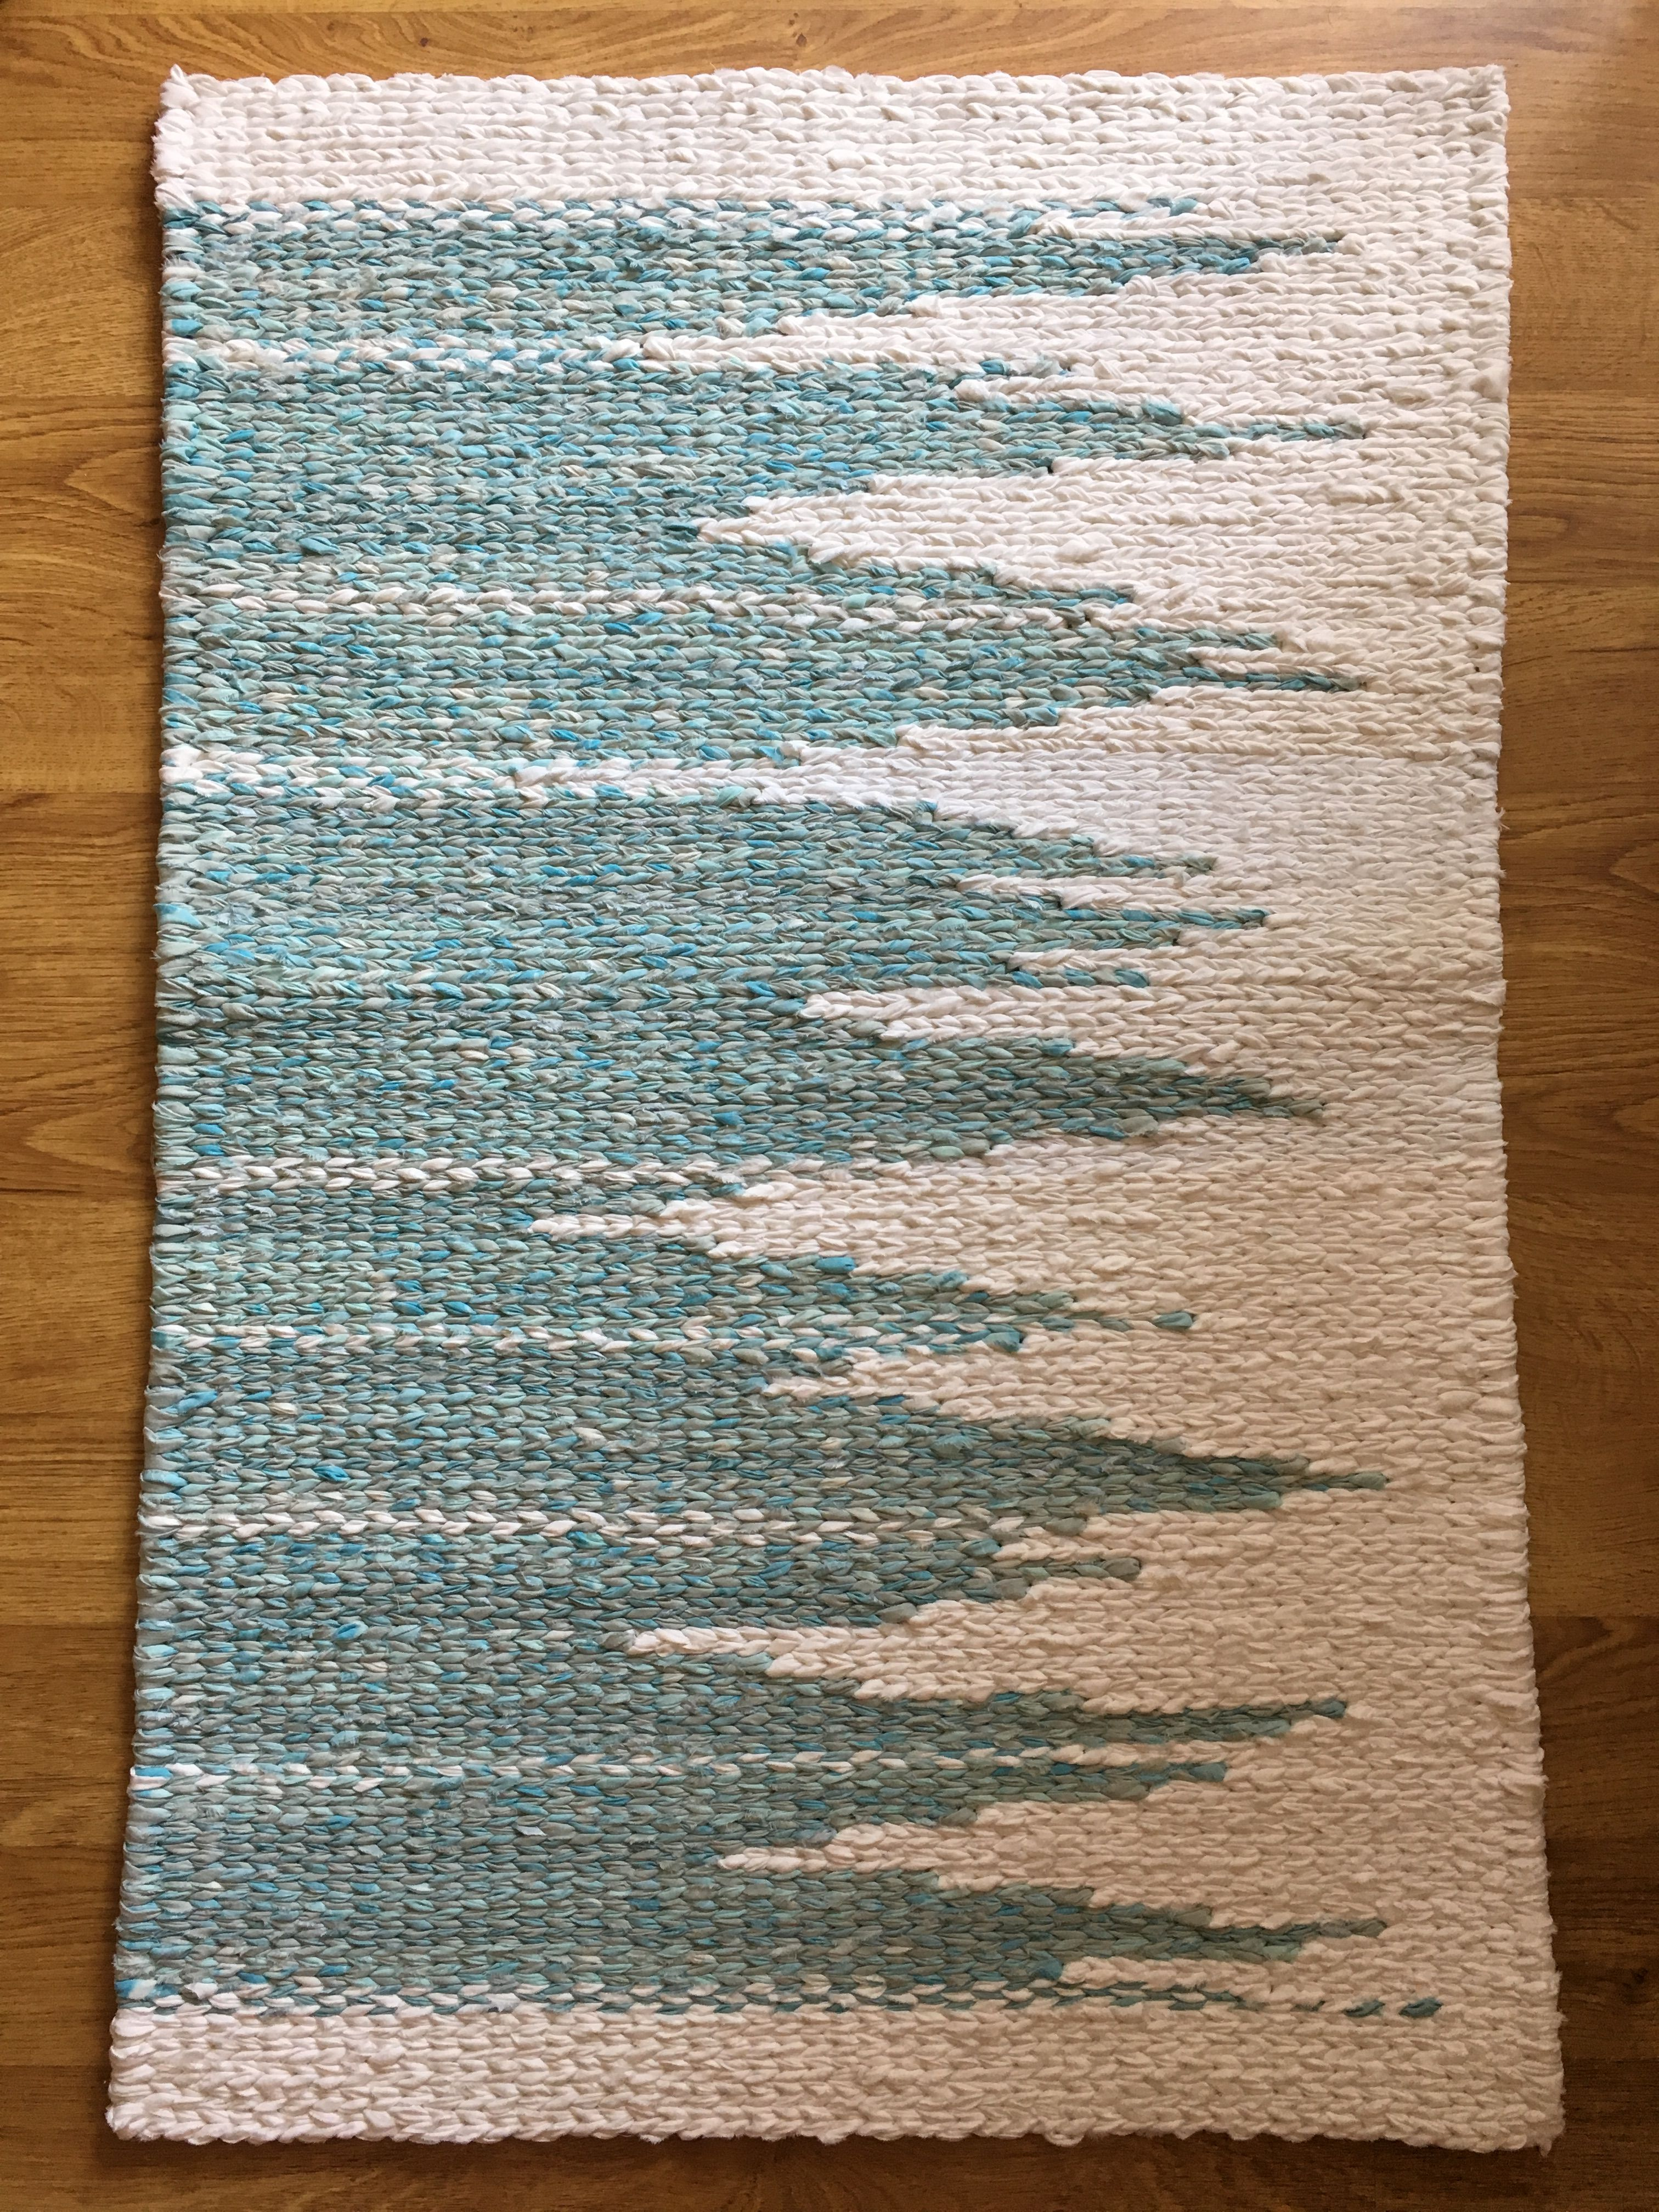 Twined Rag Rug 2 X3 Made By Sunniside